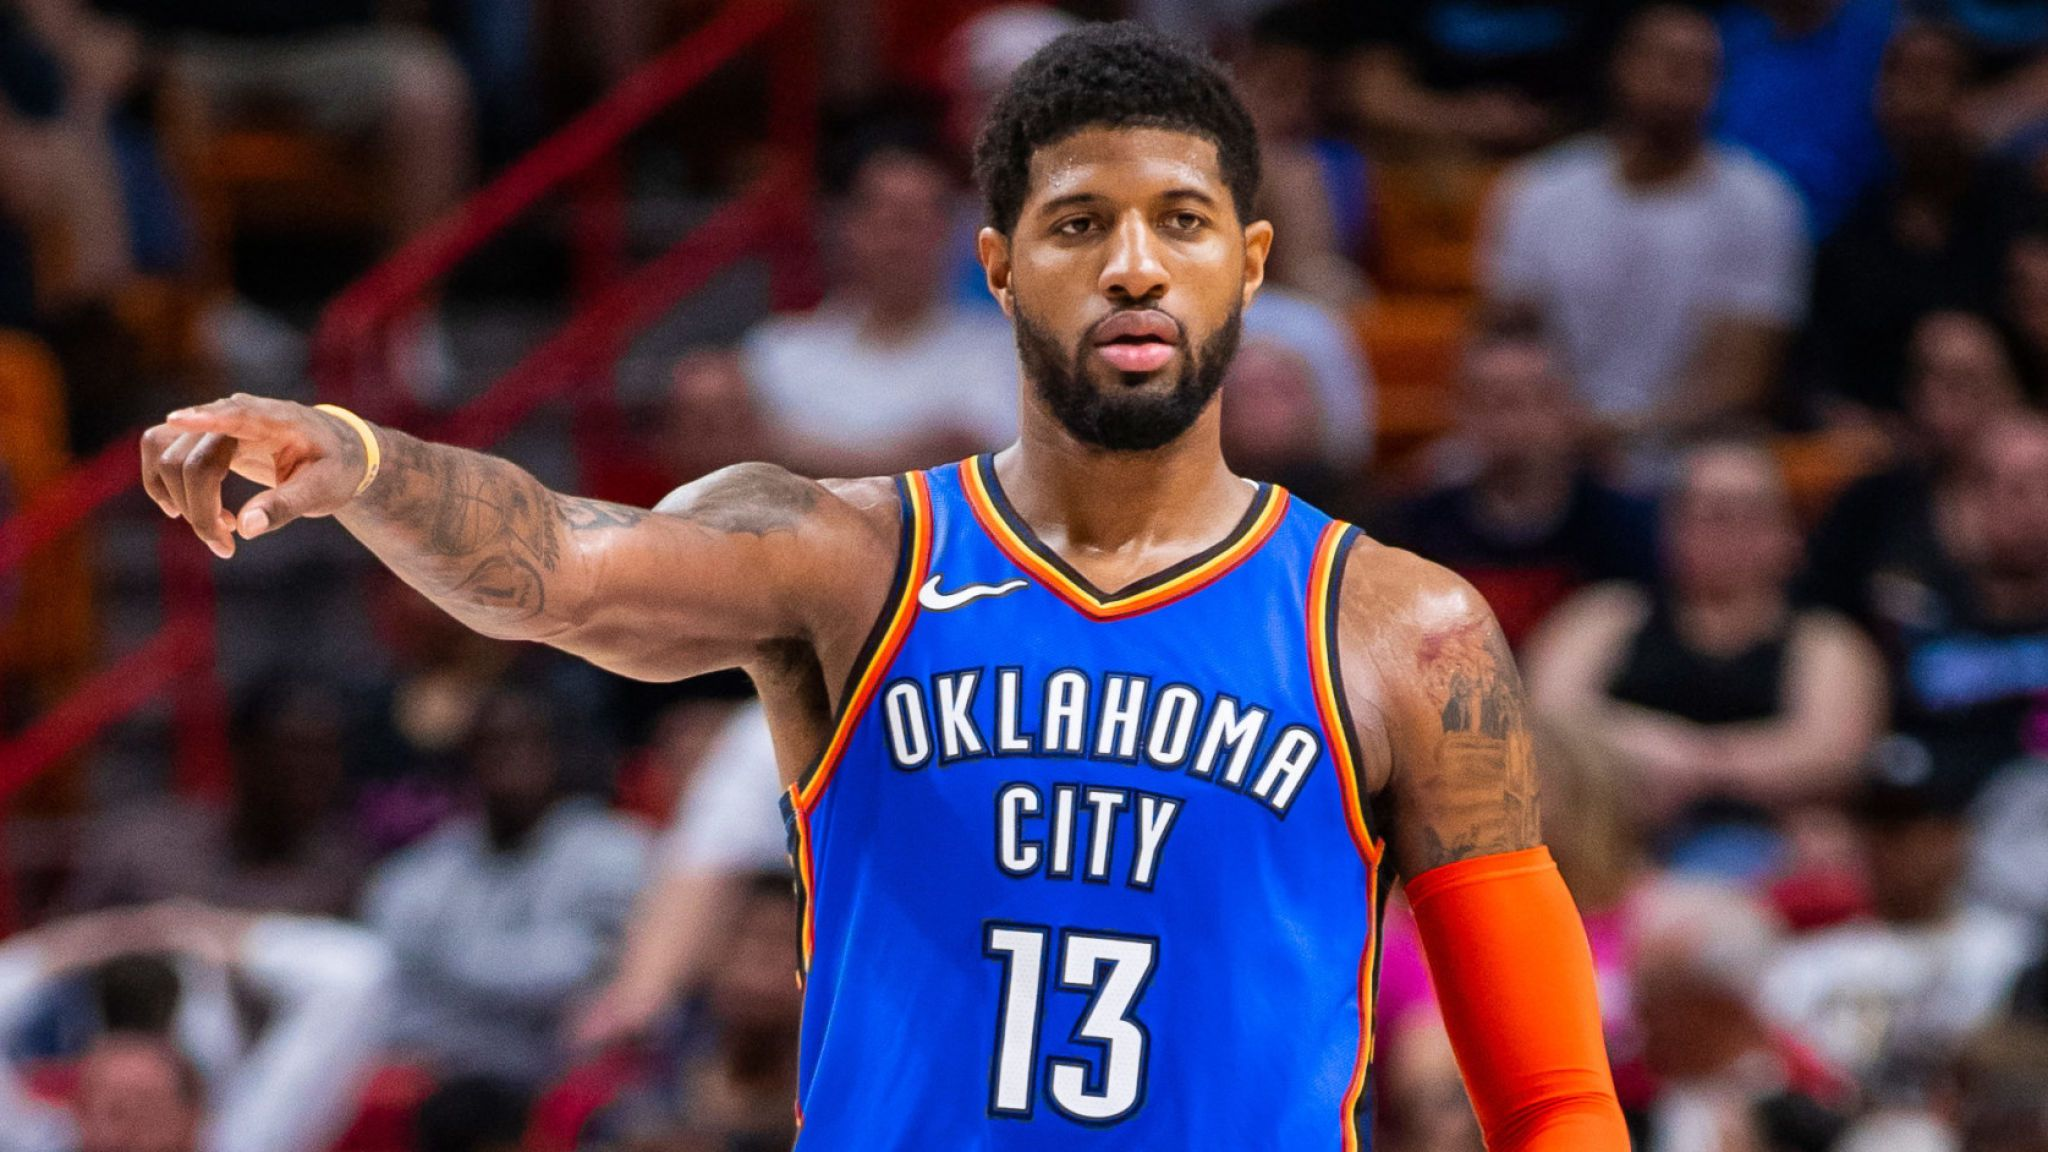 Paul George Sets Up A Thunder Possession Lakers Vs Clippers 2020 2048x1152 Wallpaper Teahub Io